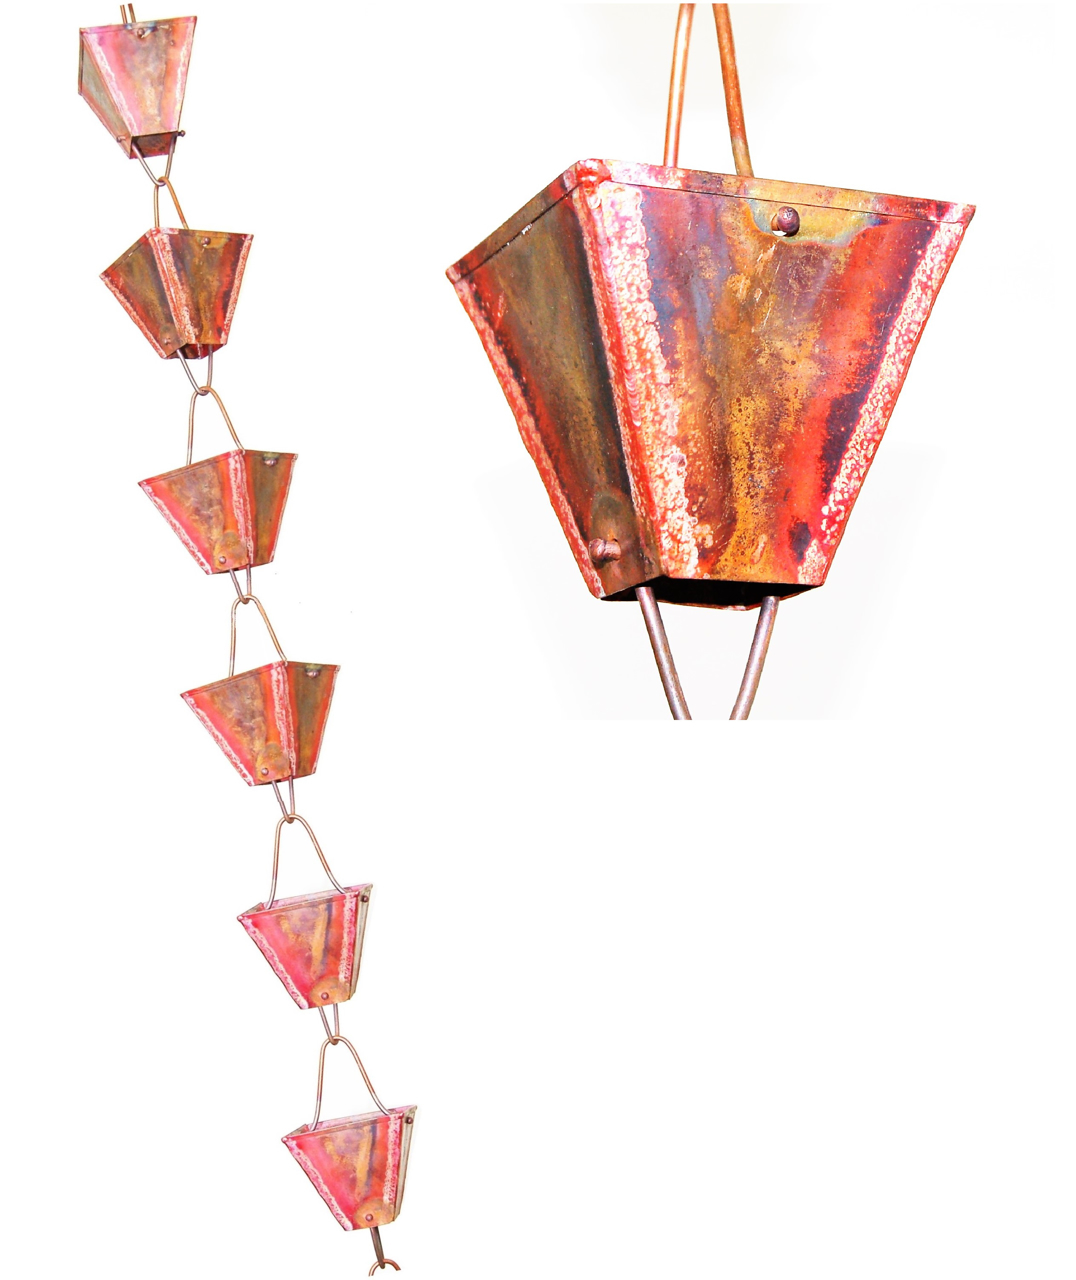 Picture of U-nitt pure Copper Rain Chain, Hang From Your Roof Gutter, Decorative Downspout with Chimes & Cups : Square Cup Plain, Antiqued Copper, 8 - 1/2 ft, #3121URL